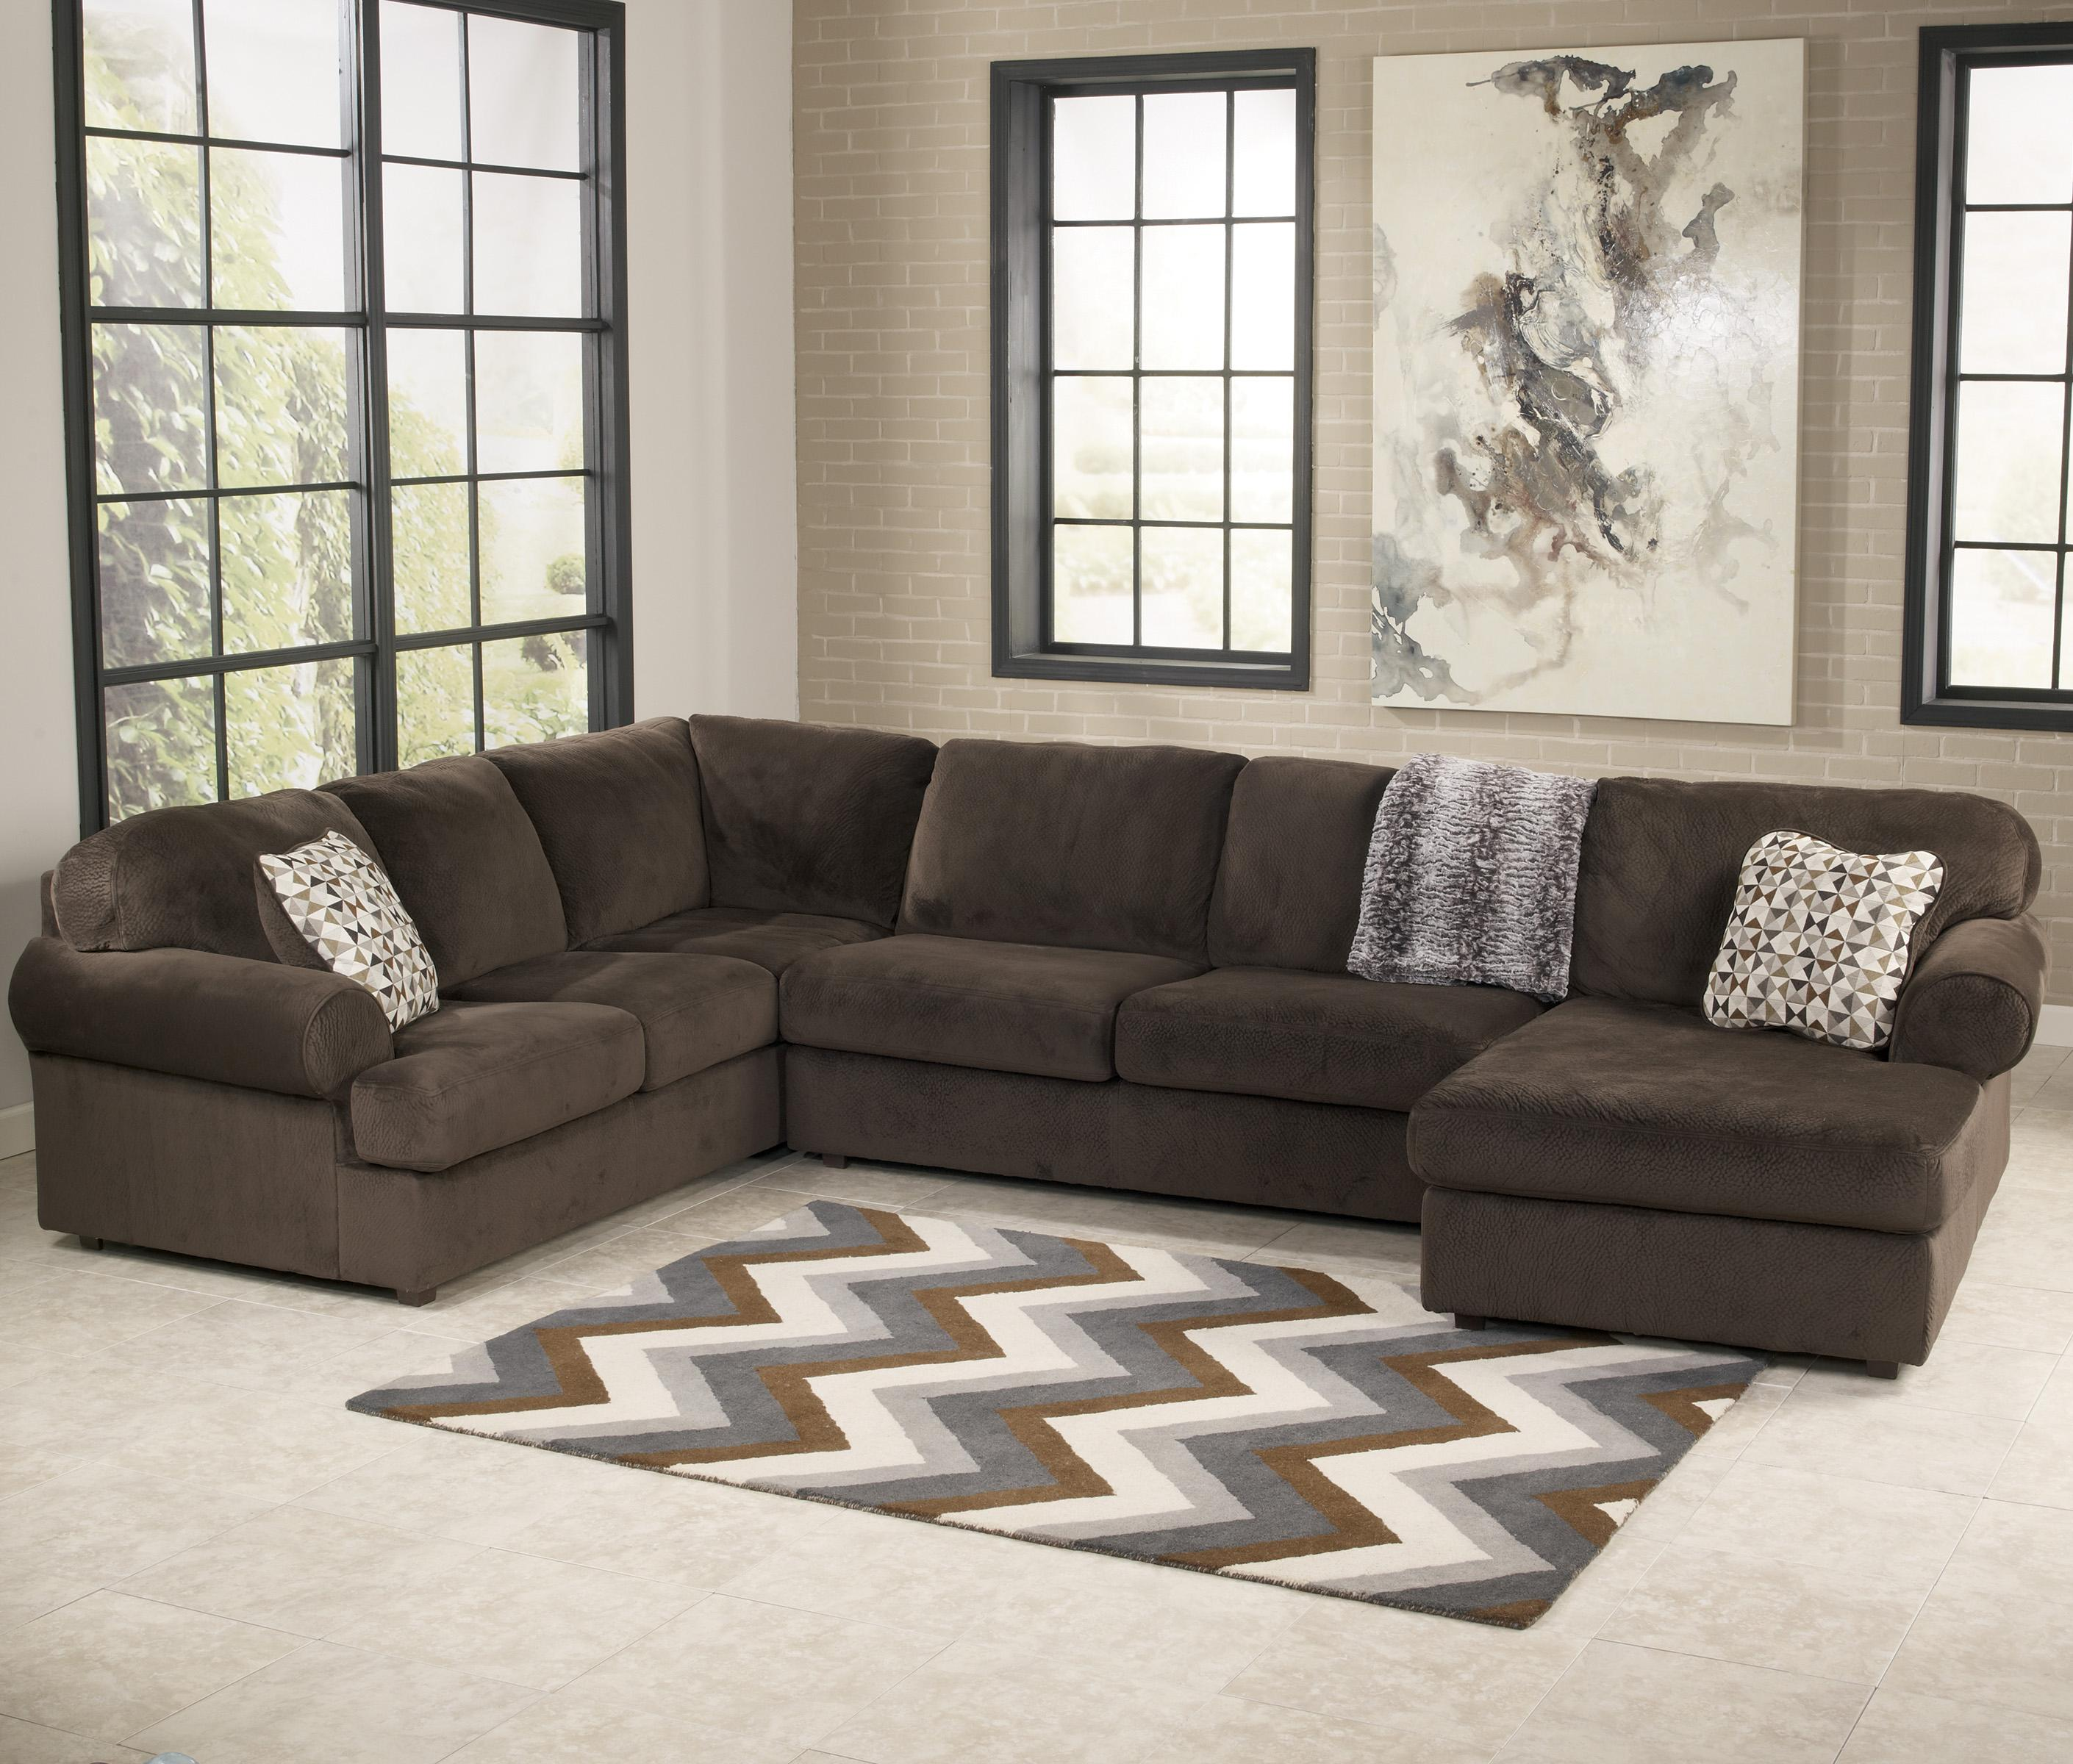 Signature Design by Ashley Jessa Place  - Chocolate Sectional Sofa with Right Chaise - Item Number: 3980466+34+17